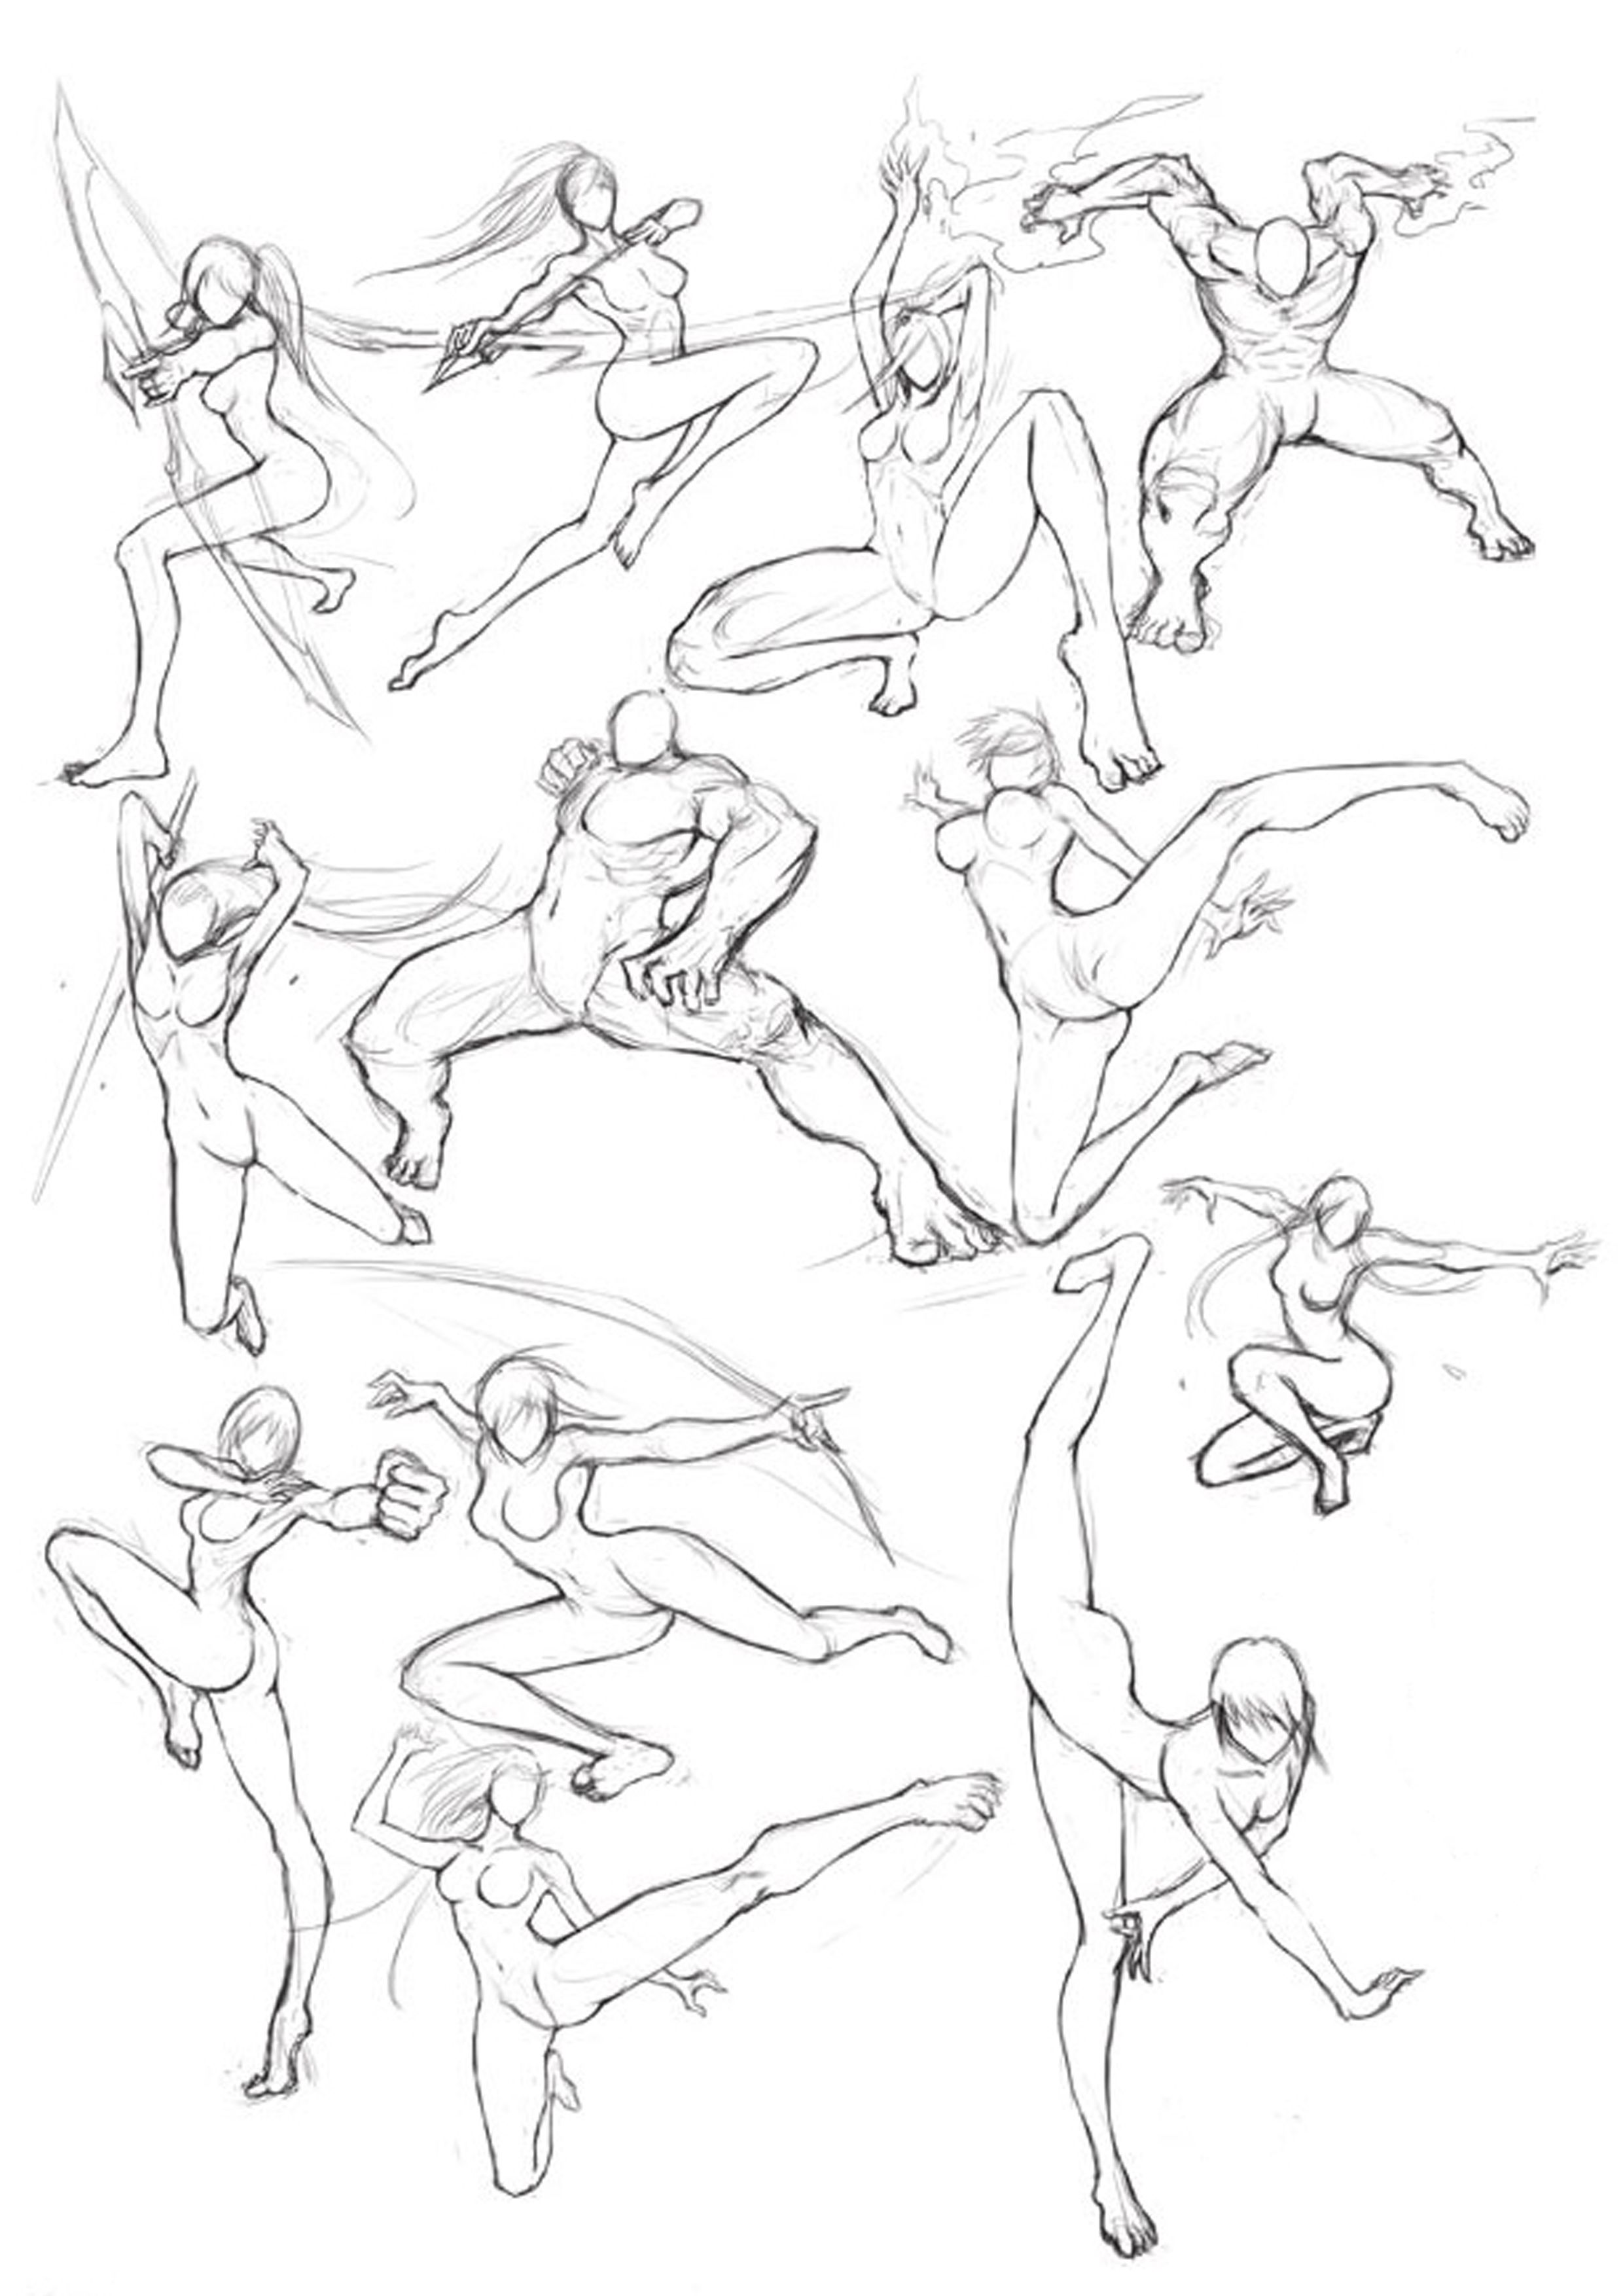 Martial Arts Posture Art Reference Poses Drawing Poses